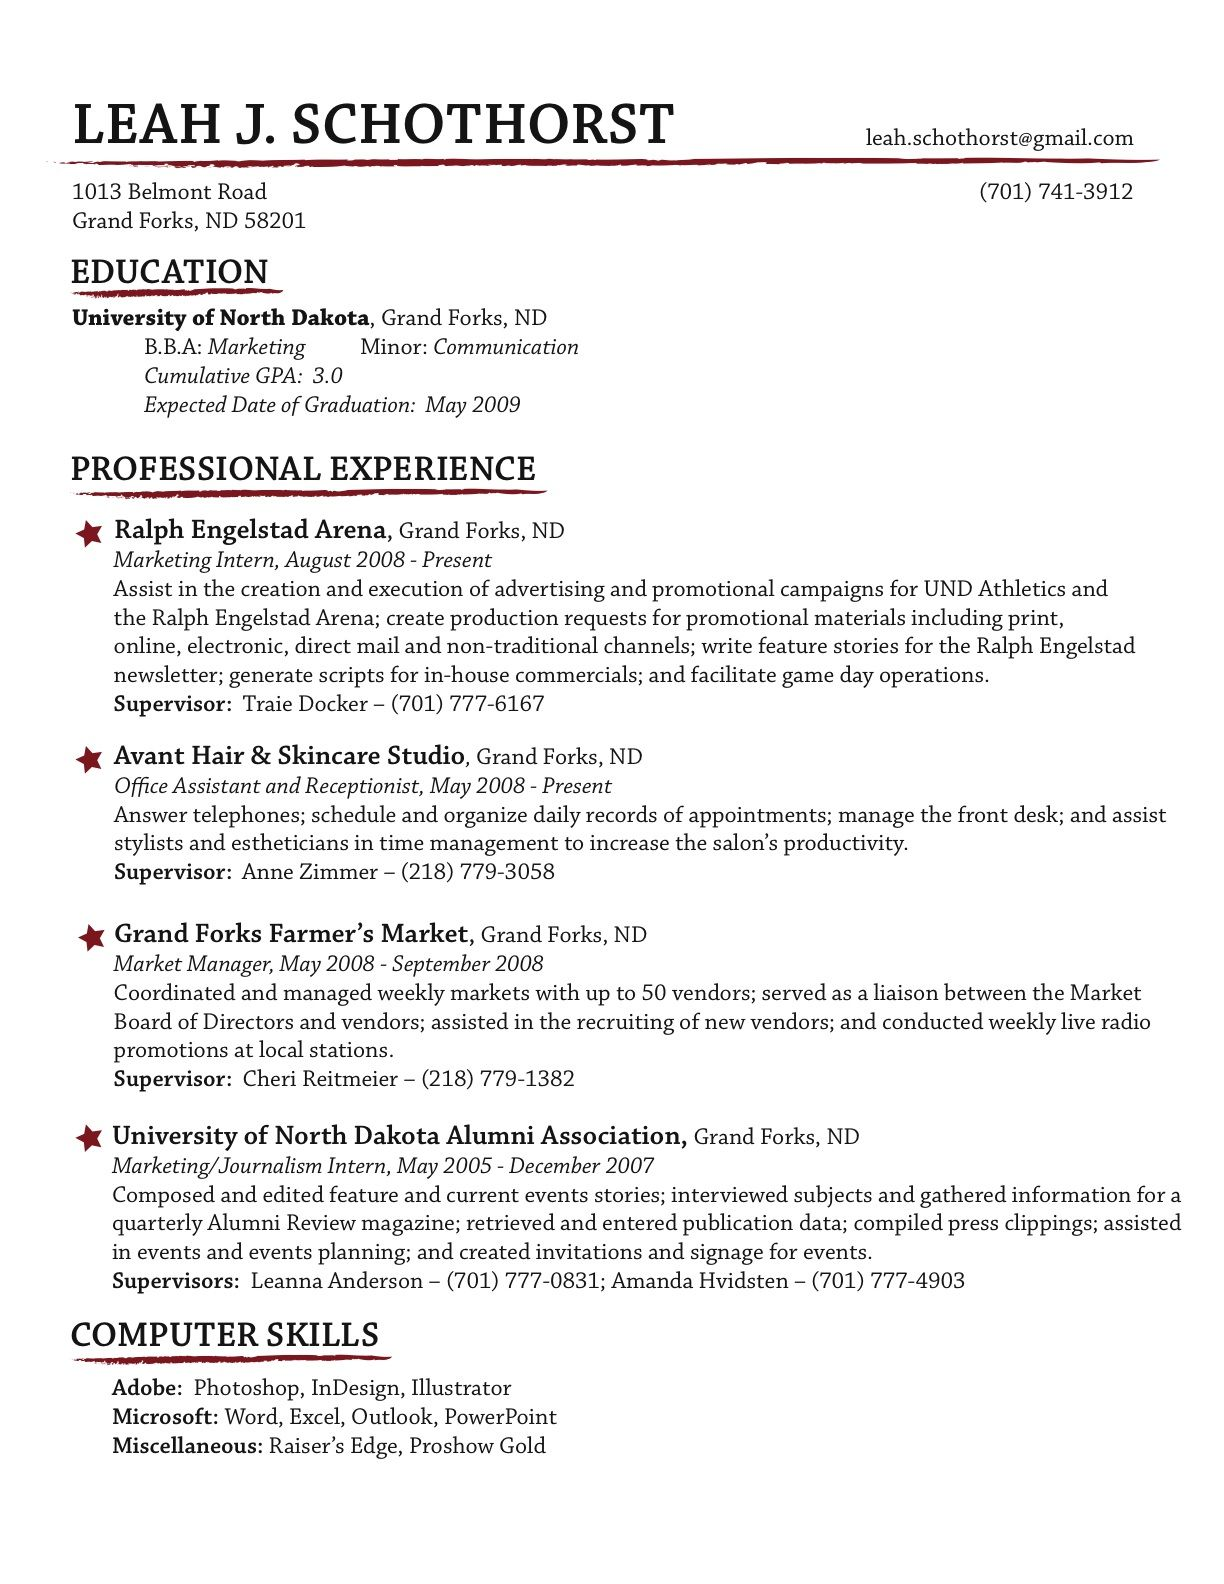 creative resume would do misc skills rather than computer - How To Organize A Resume